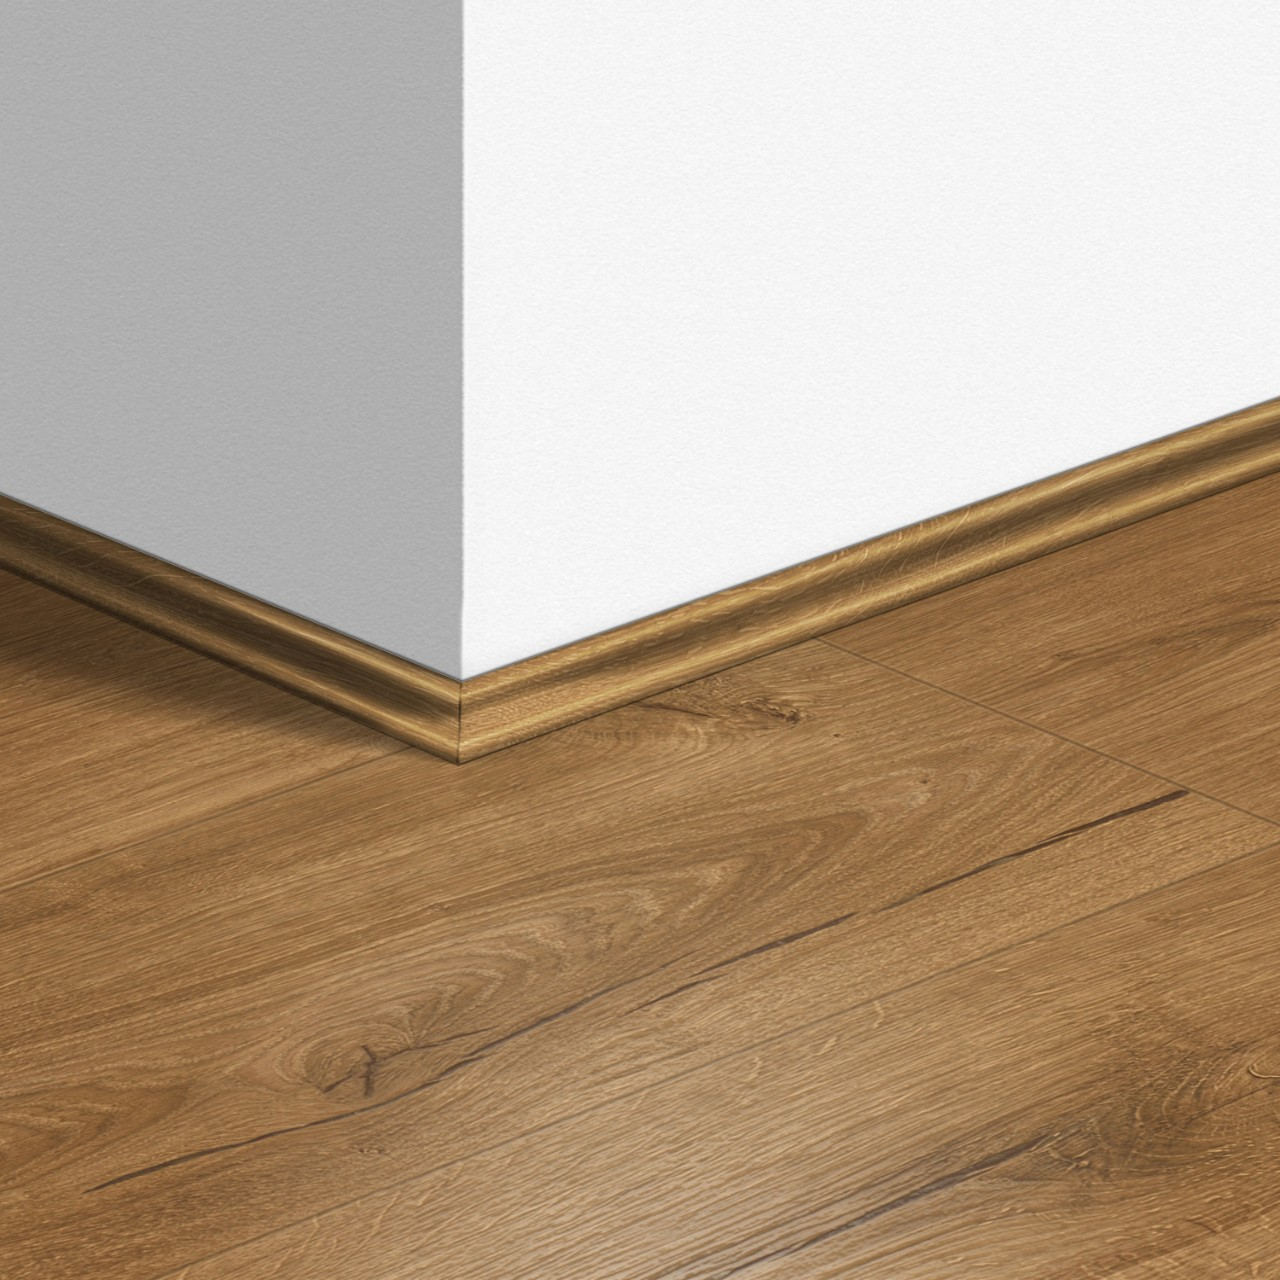 QSSCOT Laminate Accessories Classic oak natural QSSCOT01848